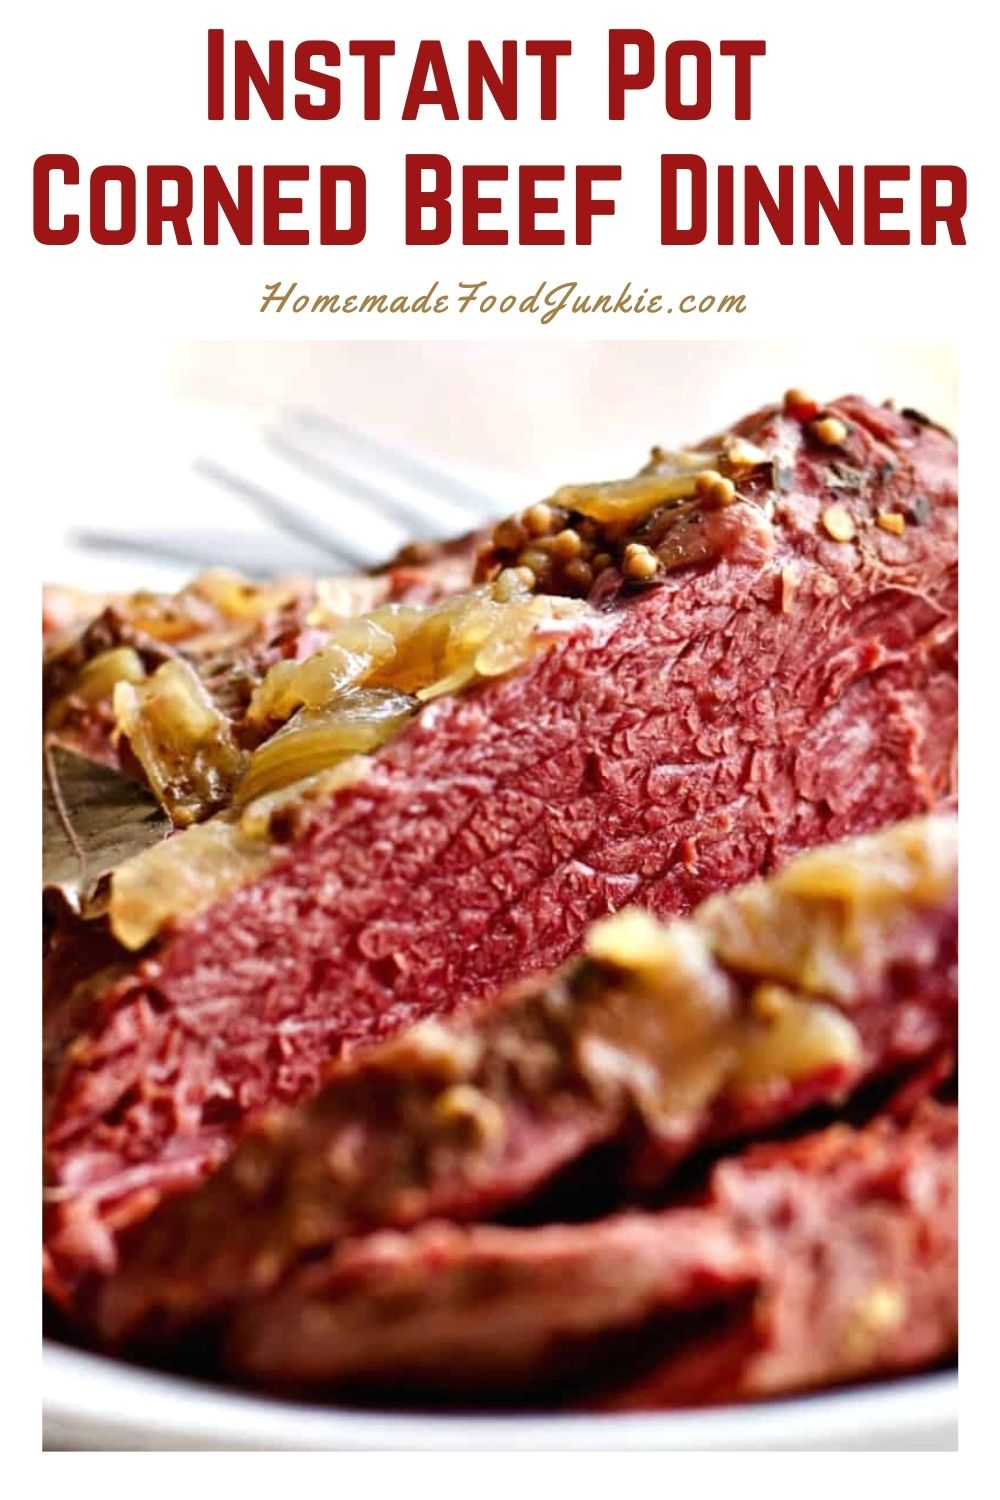 Instant pot corned beef dinner-pin image